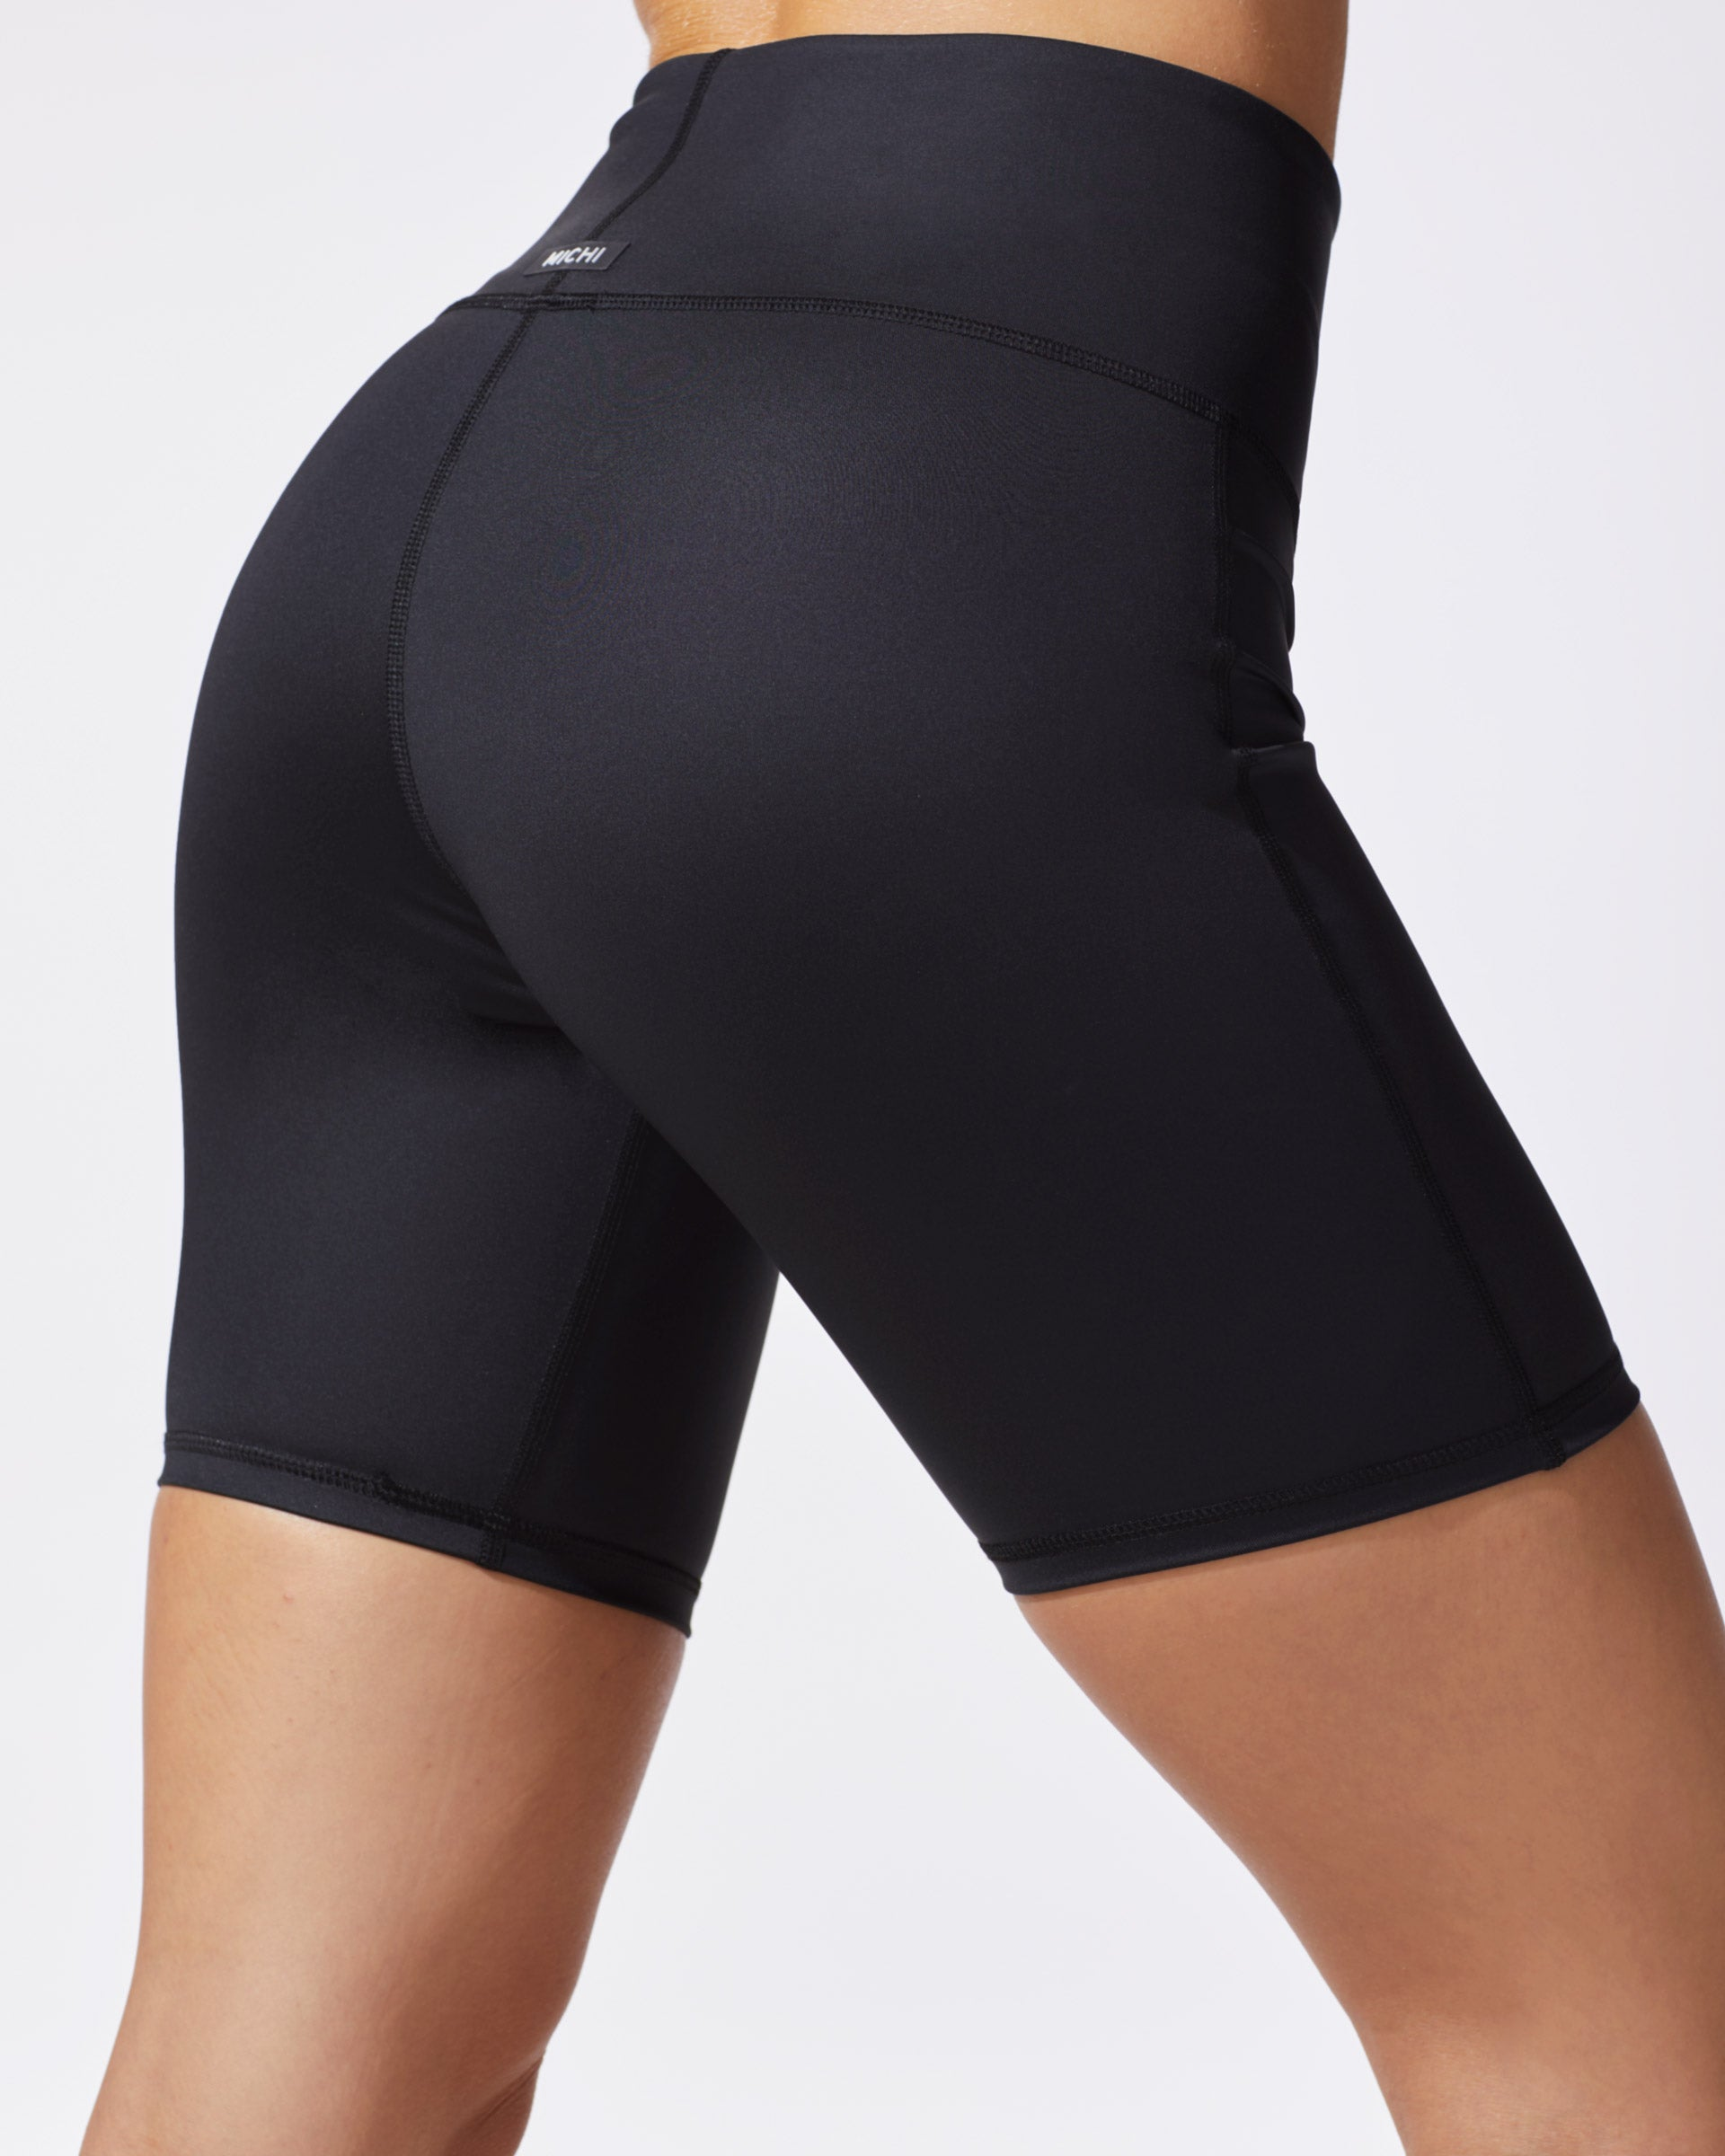 instinct-bike-short-black